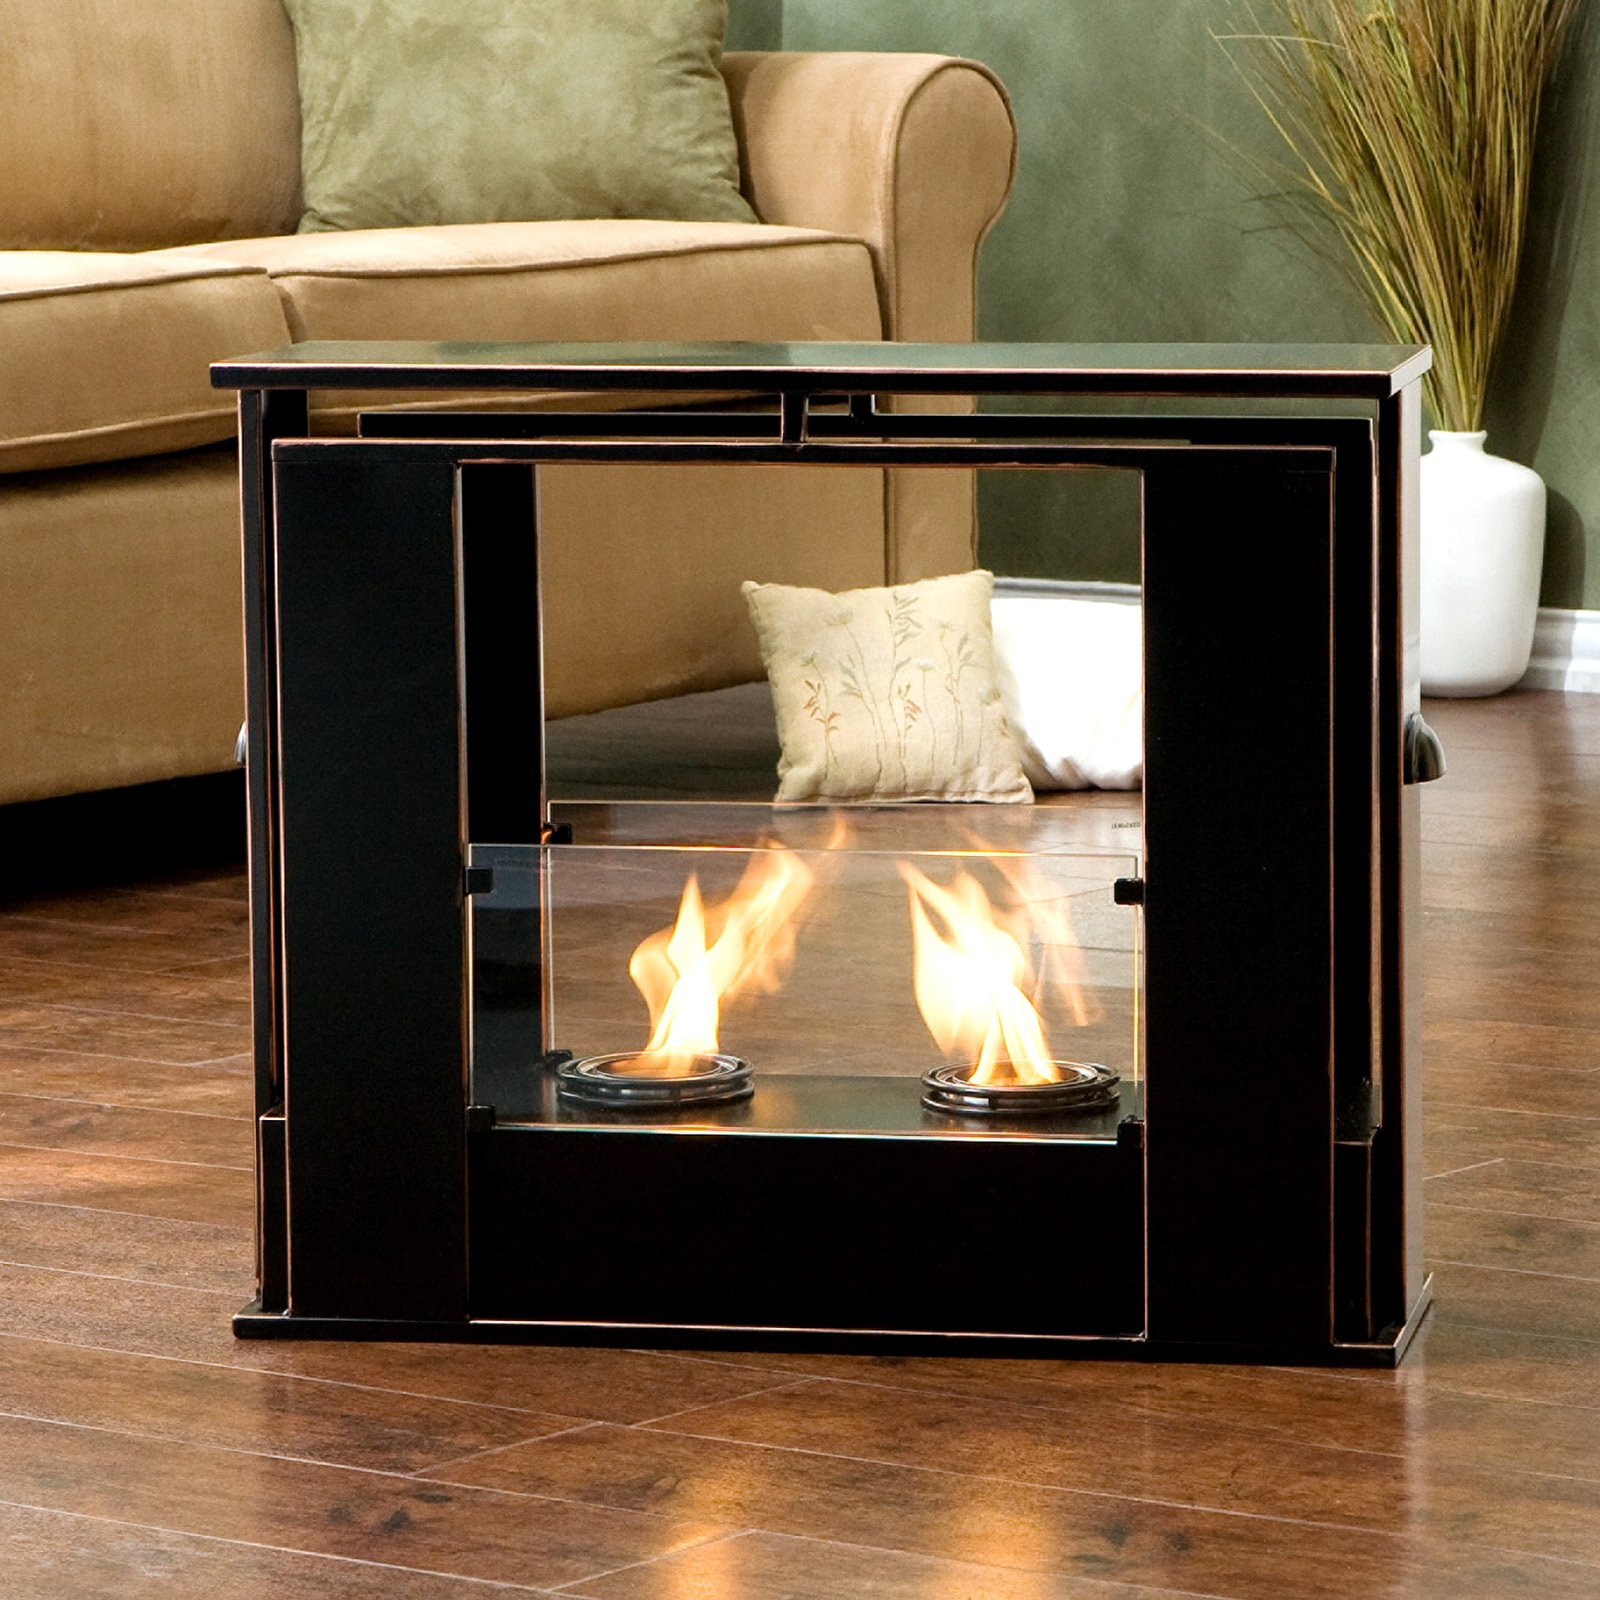 Southern Enterprises portable fireplace from Hay Needle